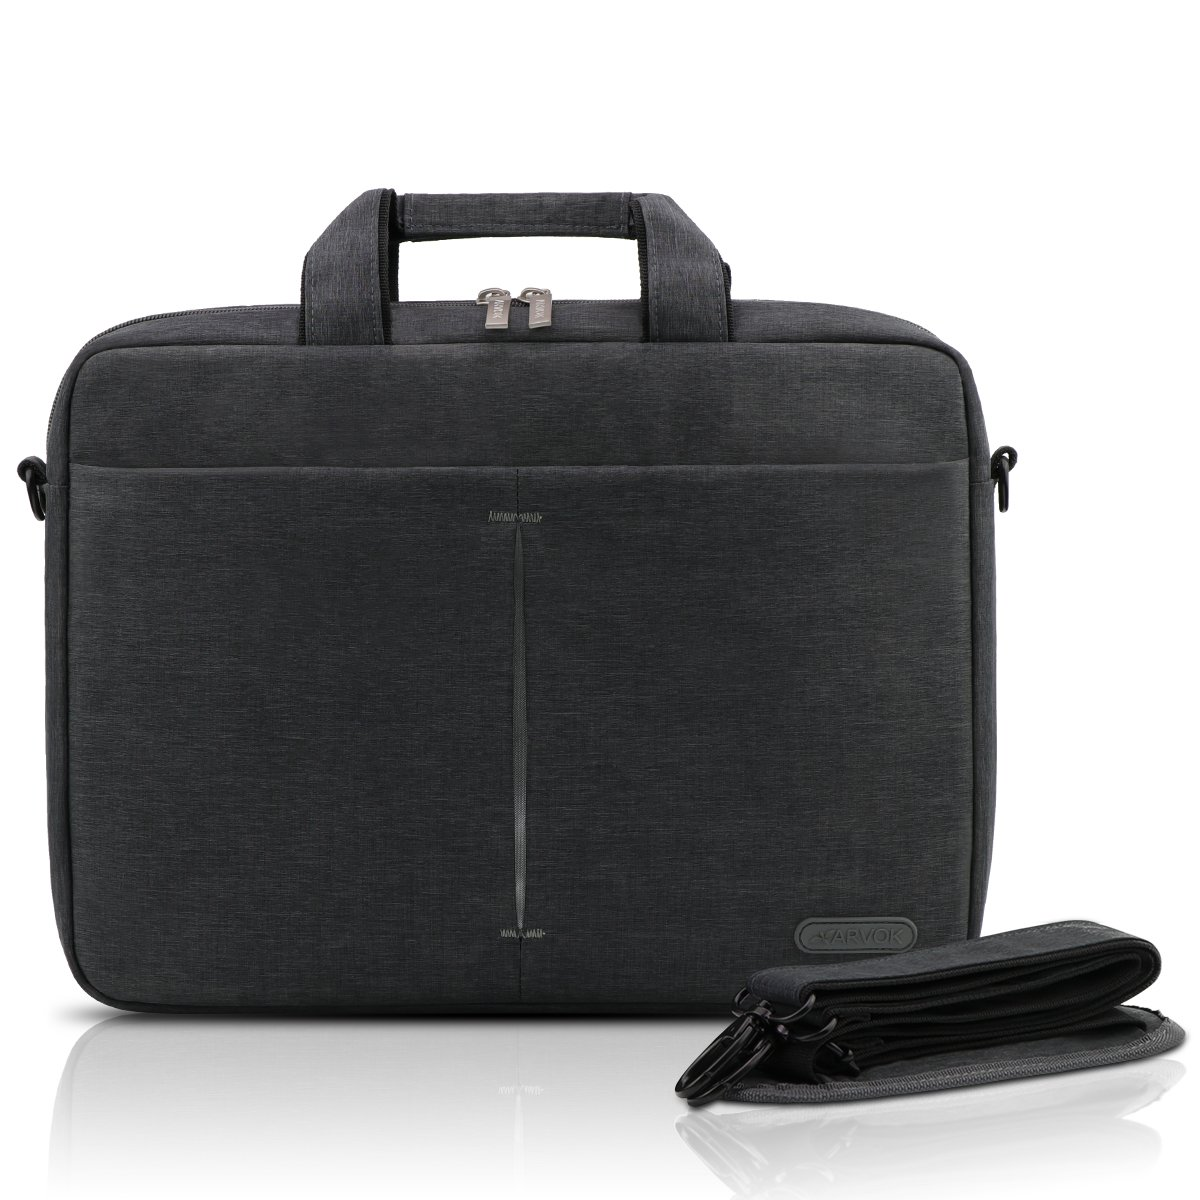 ARVOK Sacoche Ordinateur Portable 15-15.6 Pouces Sacs et Housses en Oxford avec Bandouliere et Poignée pour Tablette PC, Chromebook, Macbook Pro/Air, Ultrabook (Noir) 22NBS-FA156HS-7BA